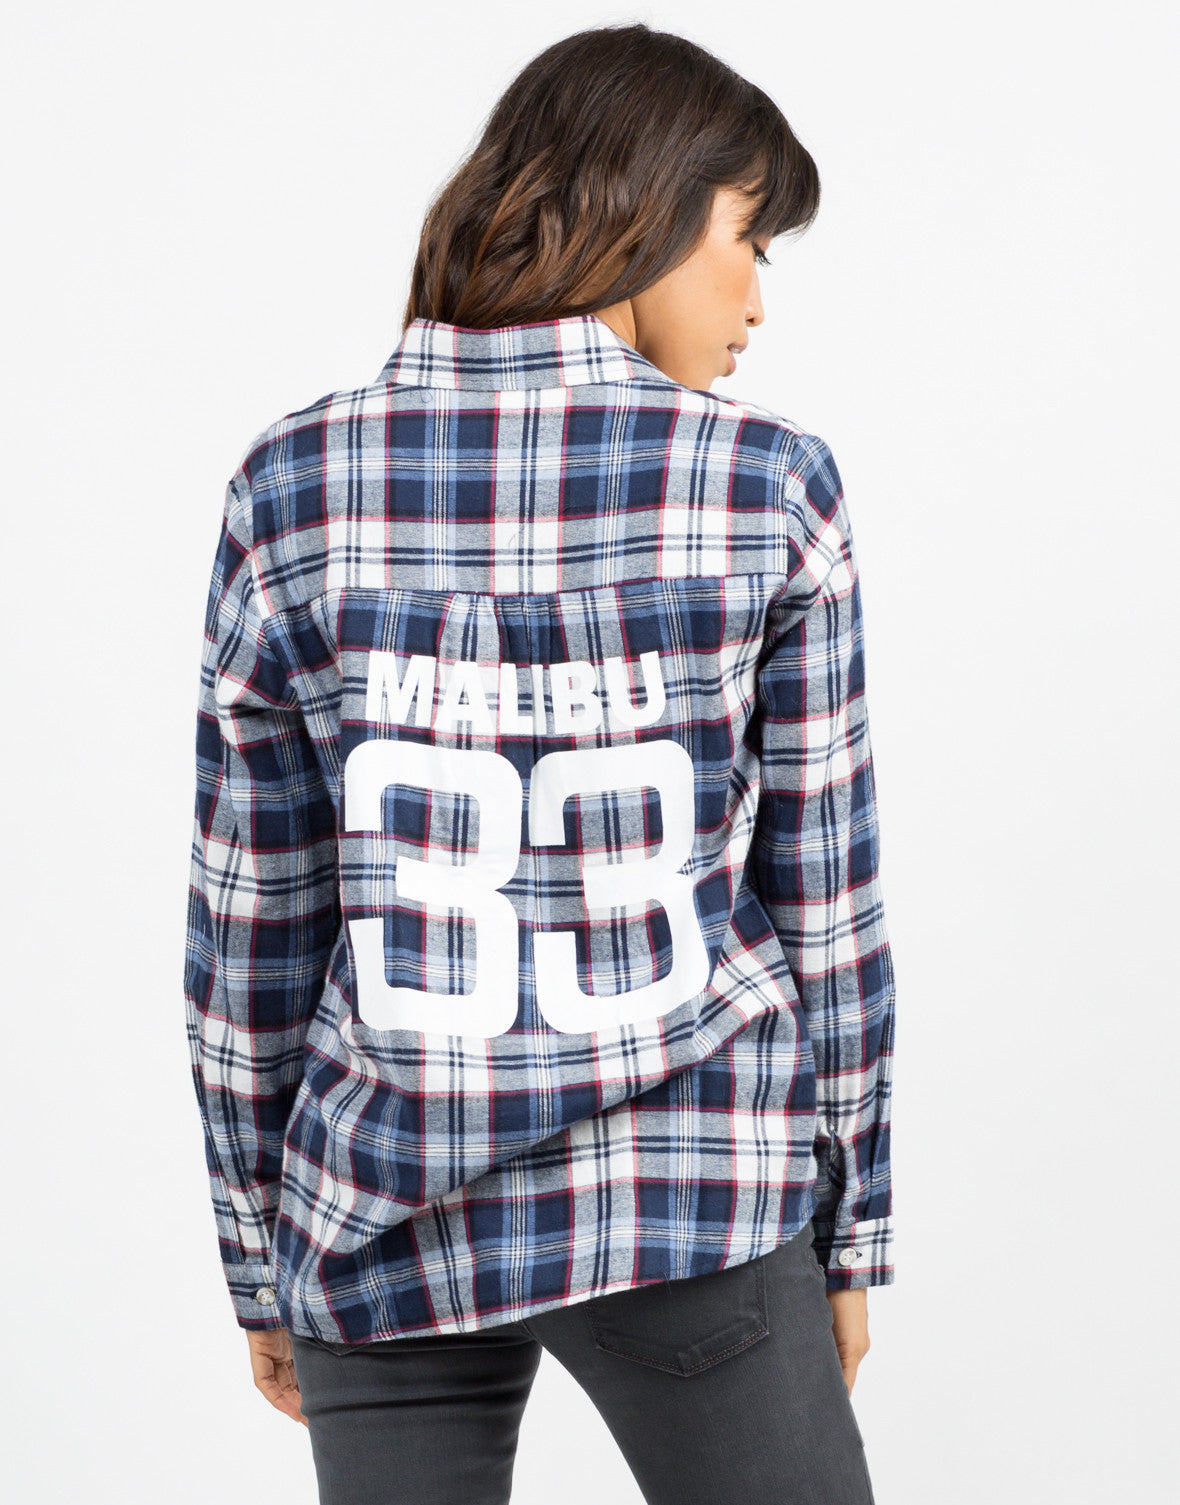 Back View of Printed Flannel Shirt